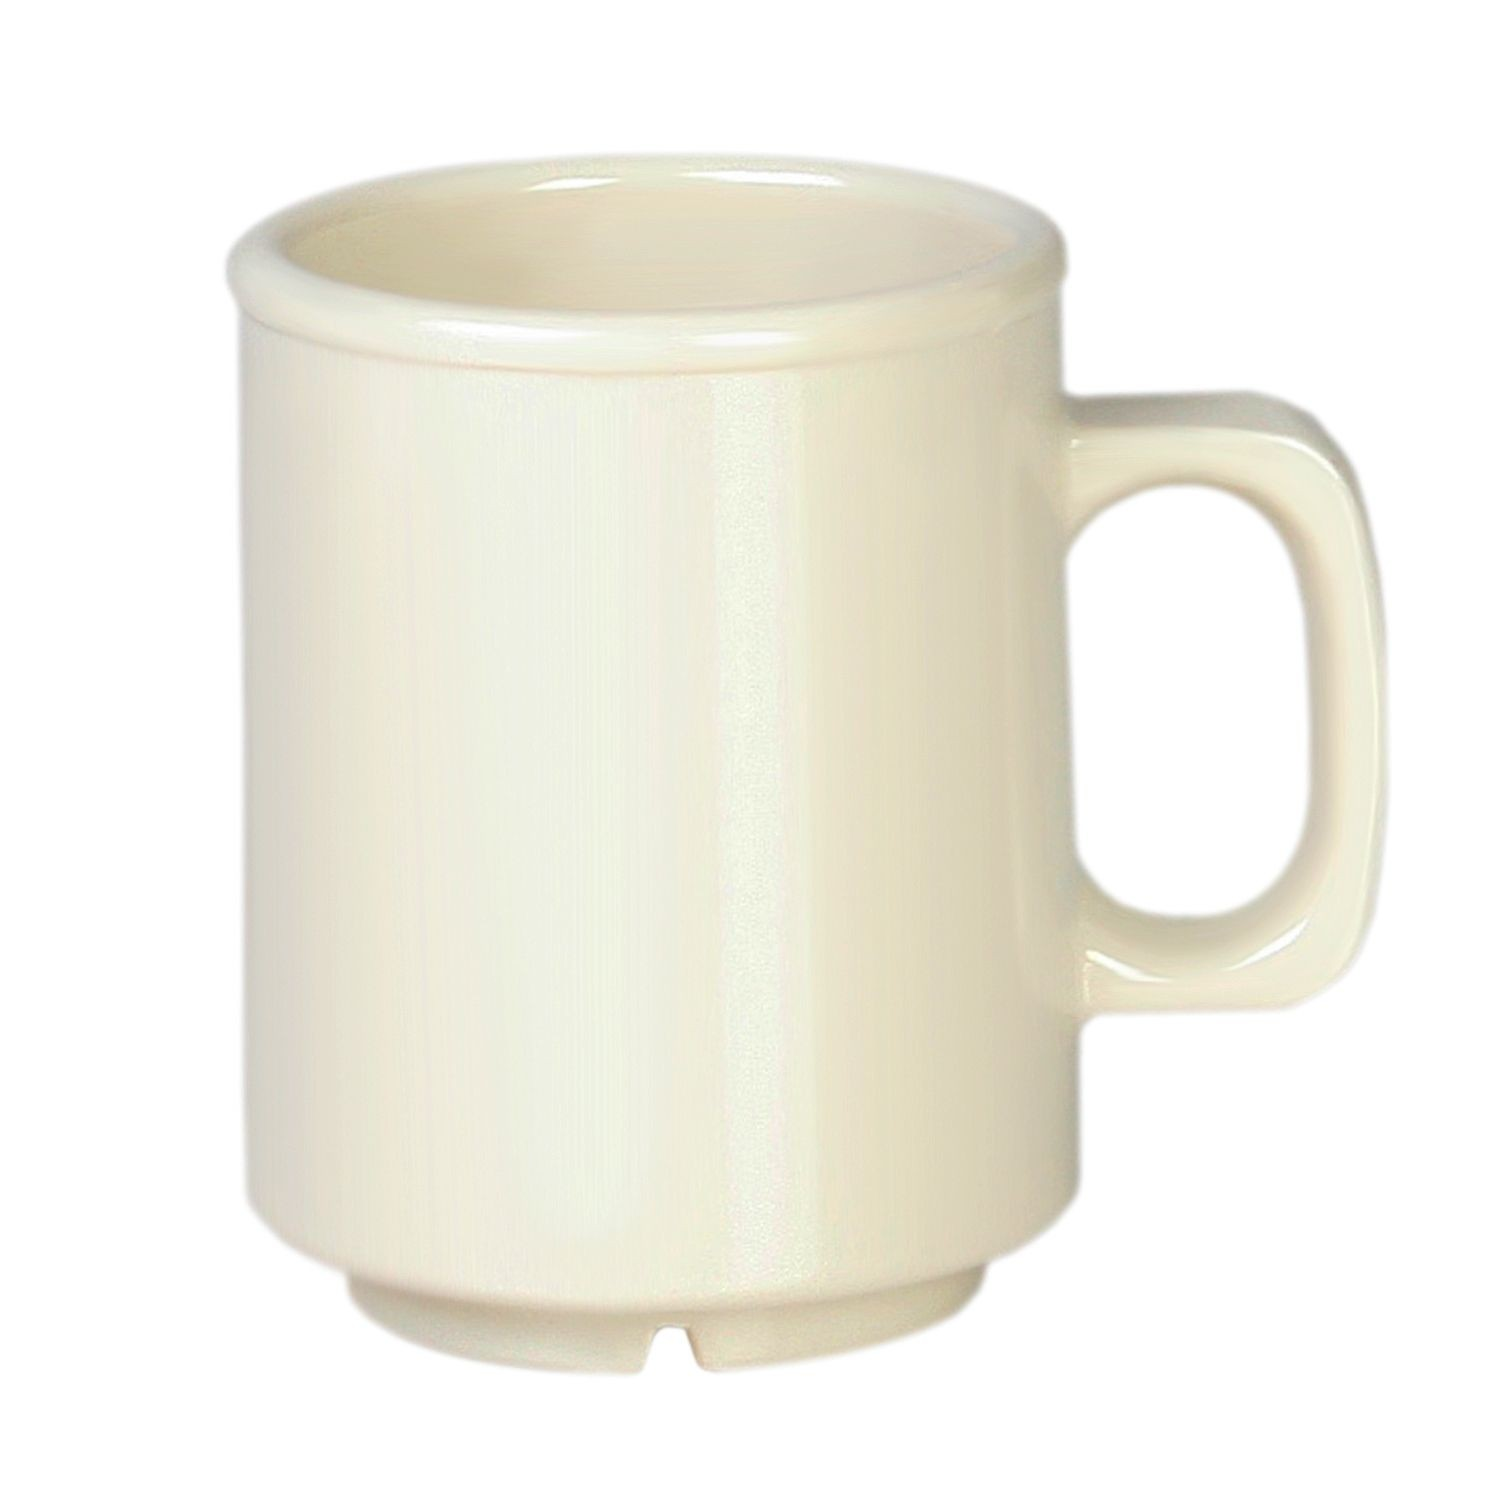 Thunder Group CR9010V Ivory Melamine Mug 8 oz. - 1 doz